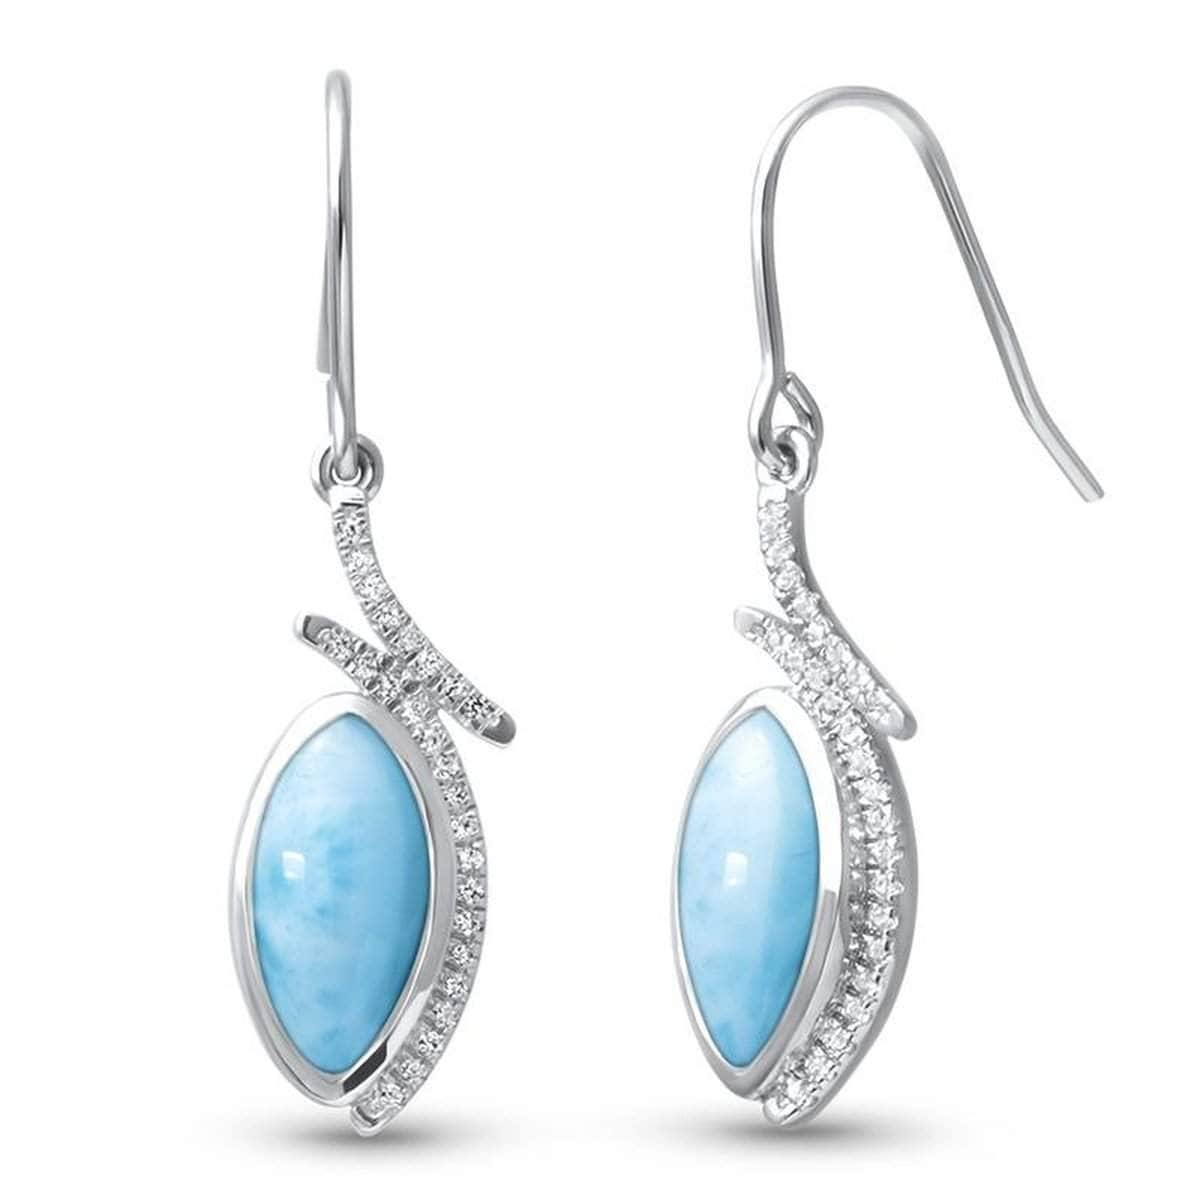 Vista White Sapphire Earrings - Evist00-00-Marahlago Larimar-Renee Taylor Gallery